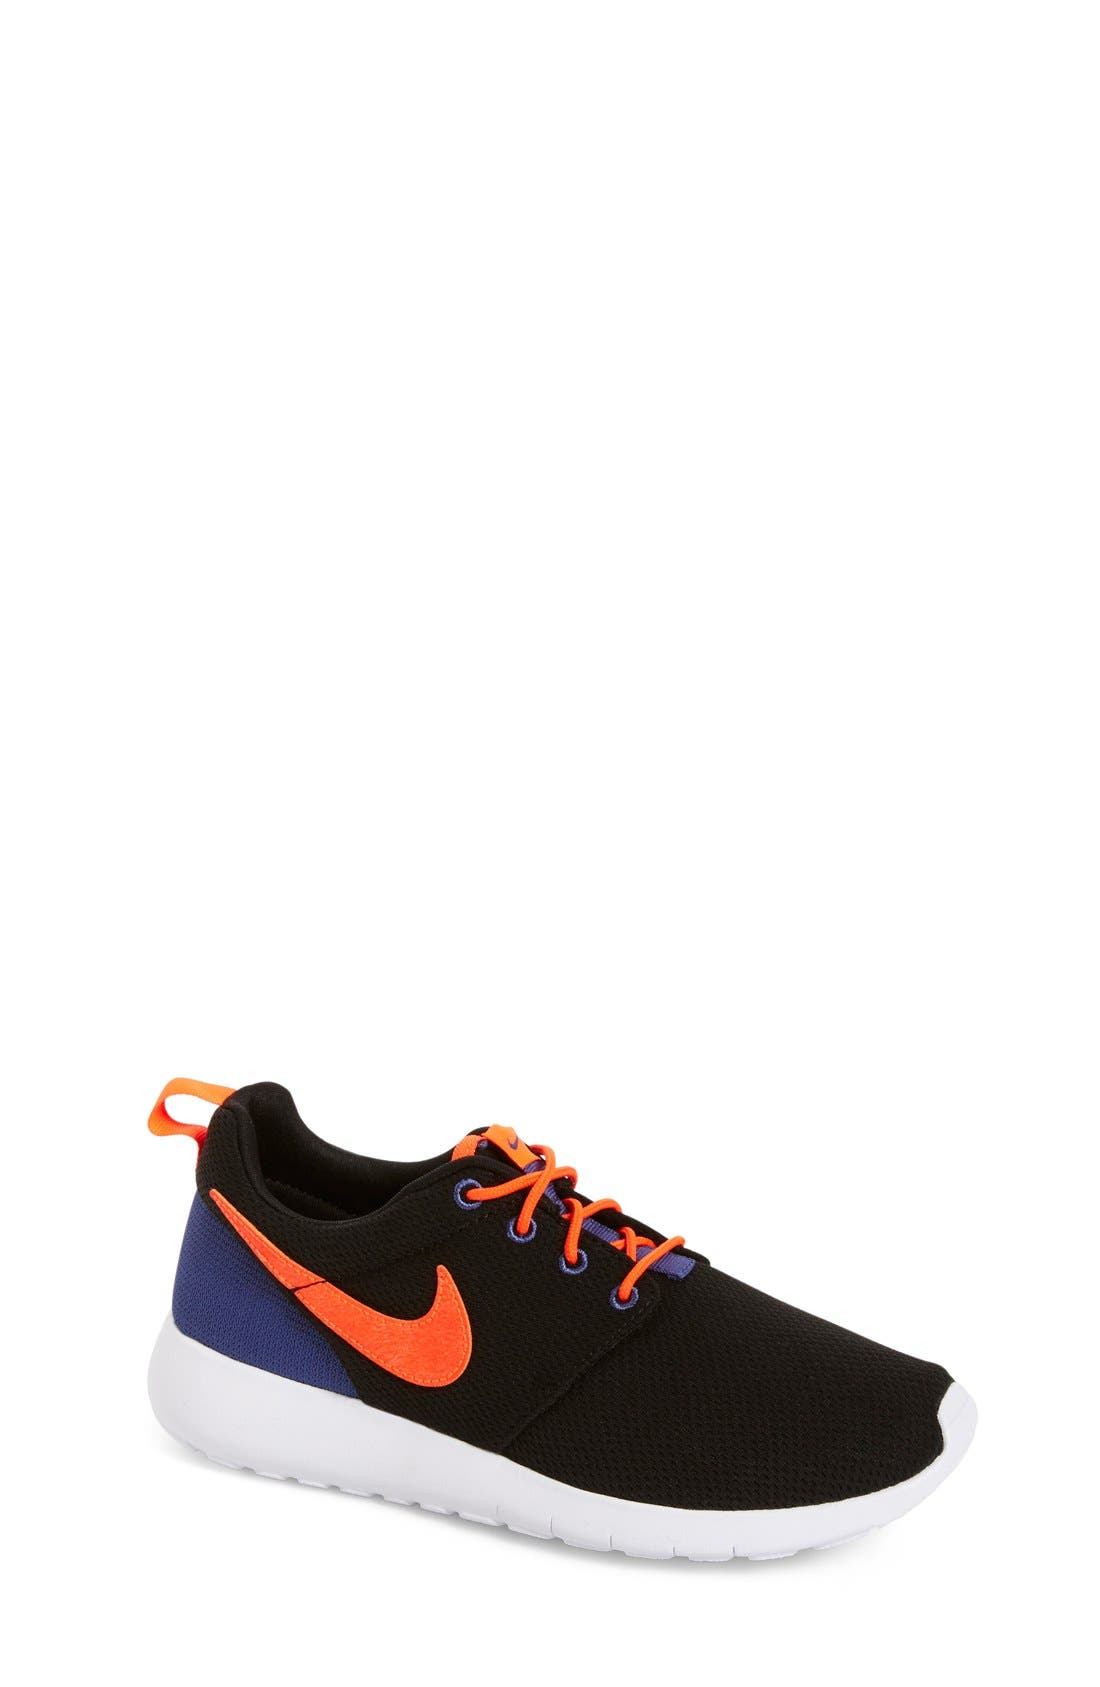 'Roshe Run' Sneaker,                             Main thumbnail 16, color,